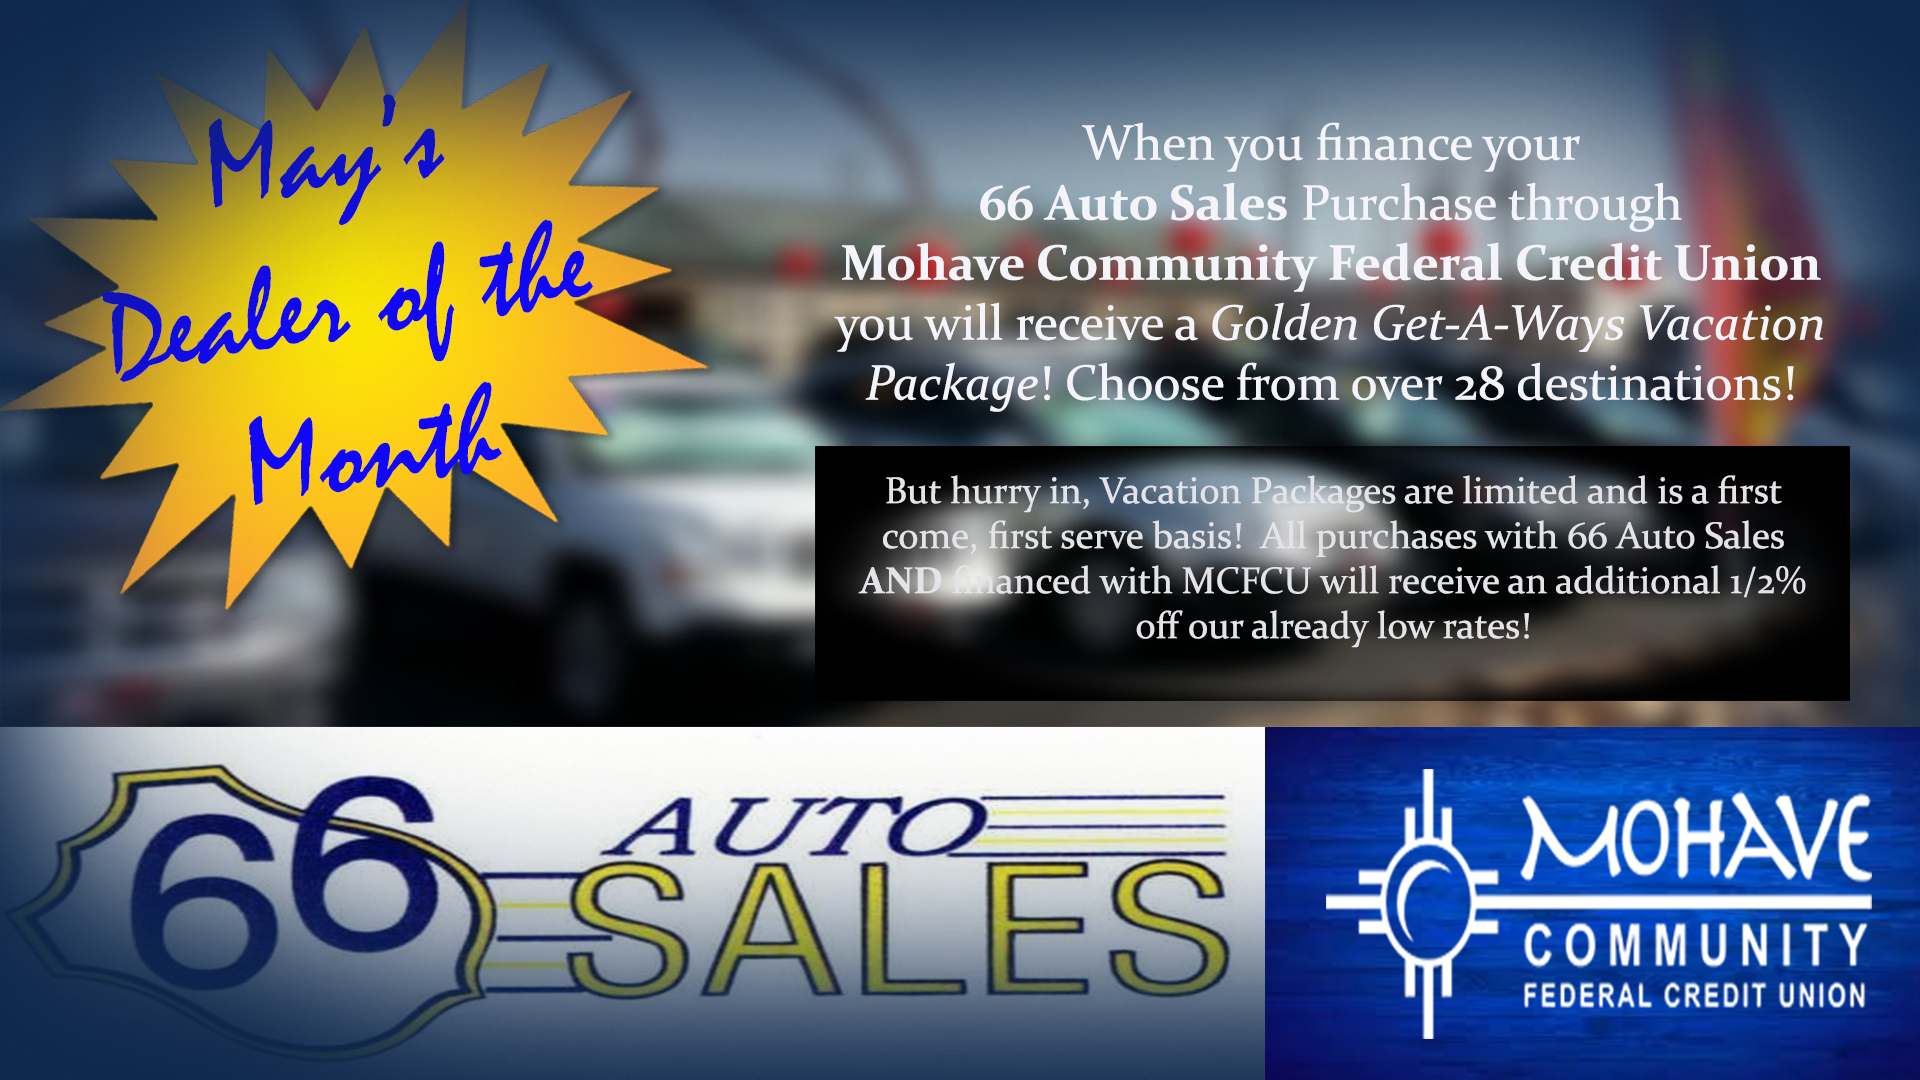 May's Dealer of the Month is 66 Auto Sales. Contact Mohave Community Federal Credit Union at 928-753-8000 for more information.